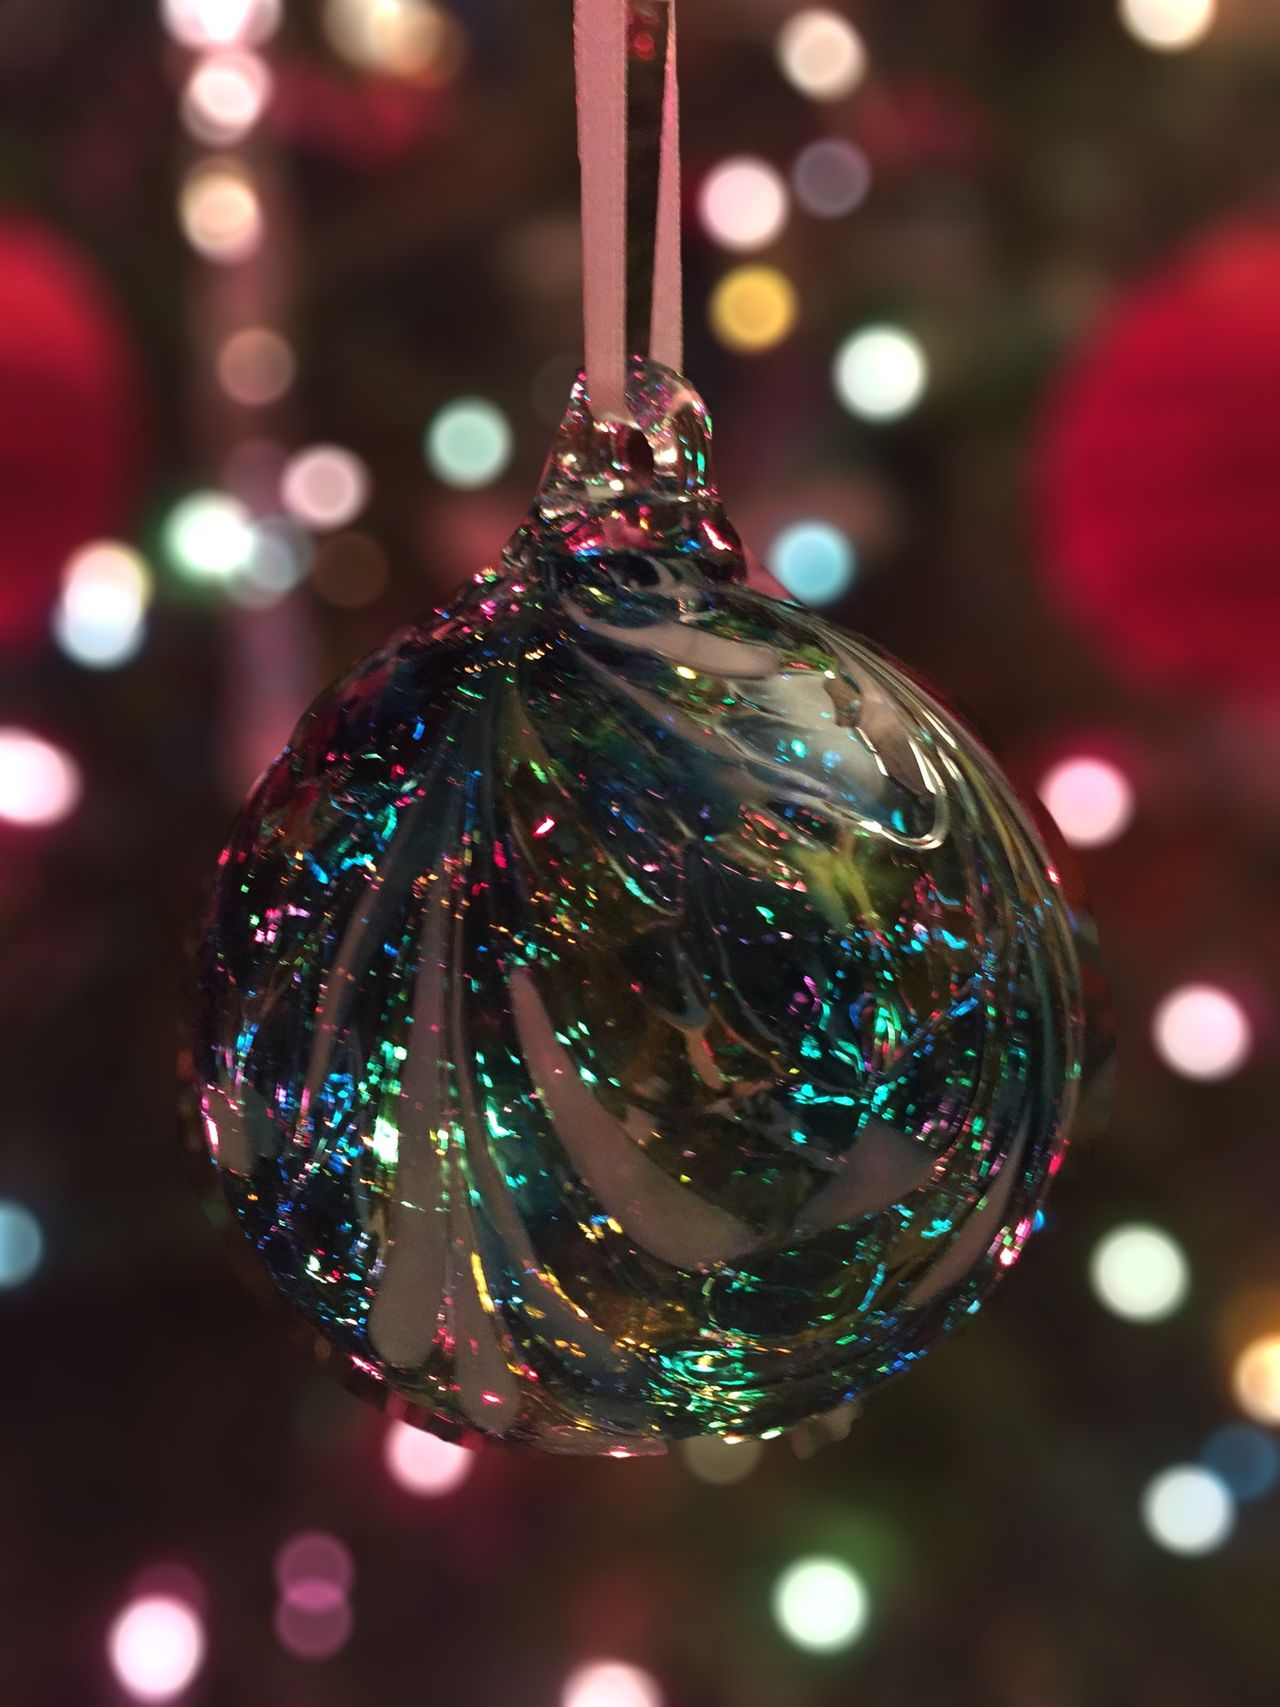 An ornament on our Christmas tree Christmas Decorations Christmas Ornament ❄⛄ Christmas Tree Holidays IPhoneography Dof Bokeh Hand Blown Showcase: December Ladyphotographerofthemonth IPS2015Xmas